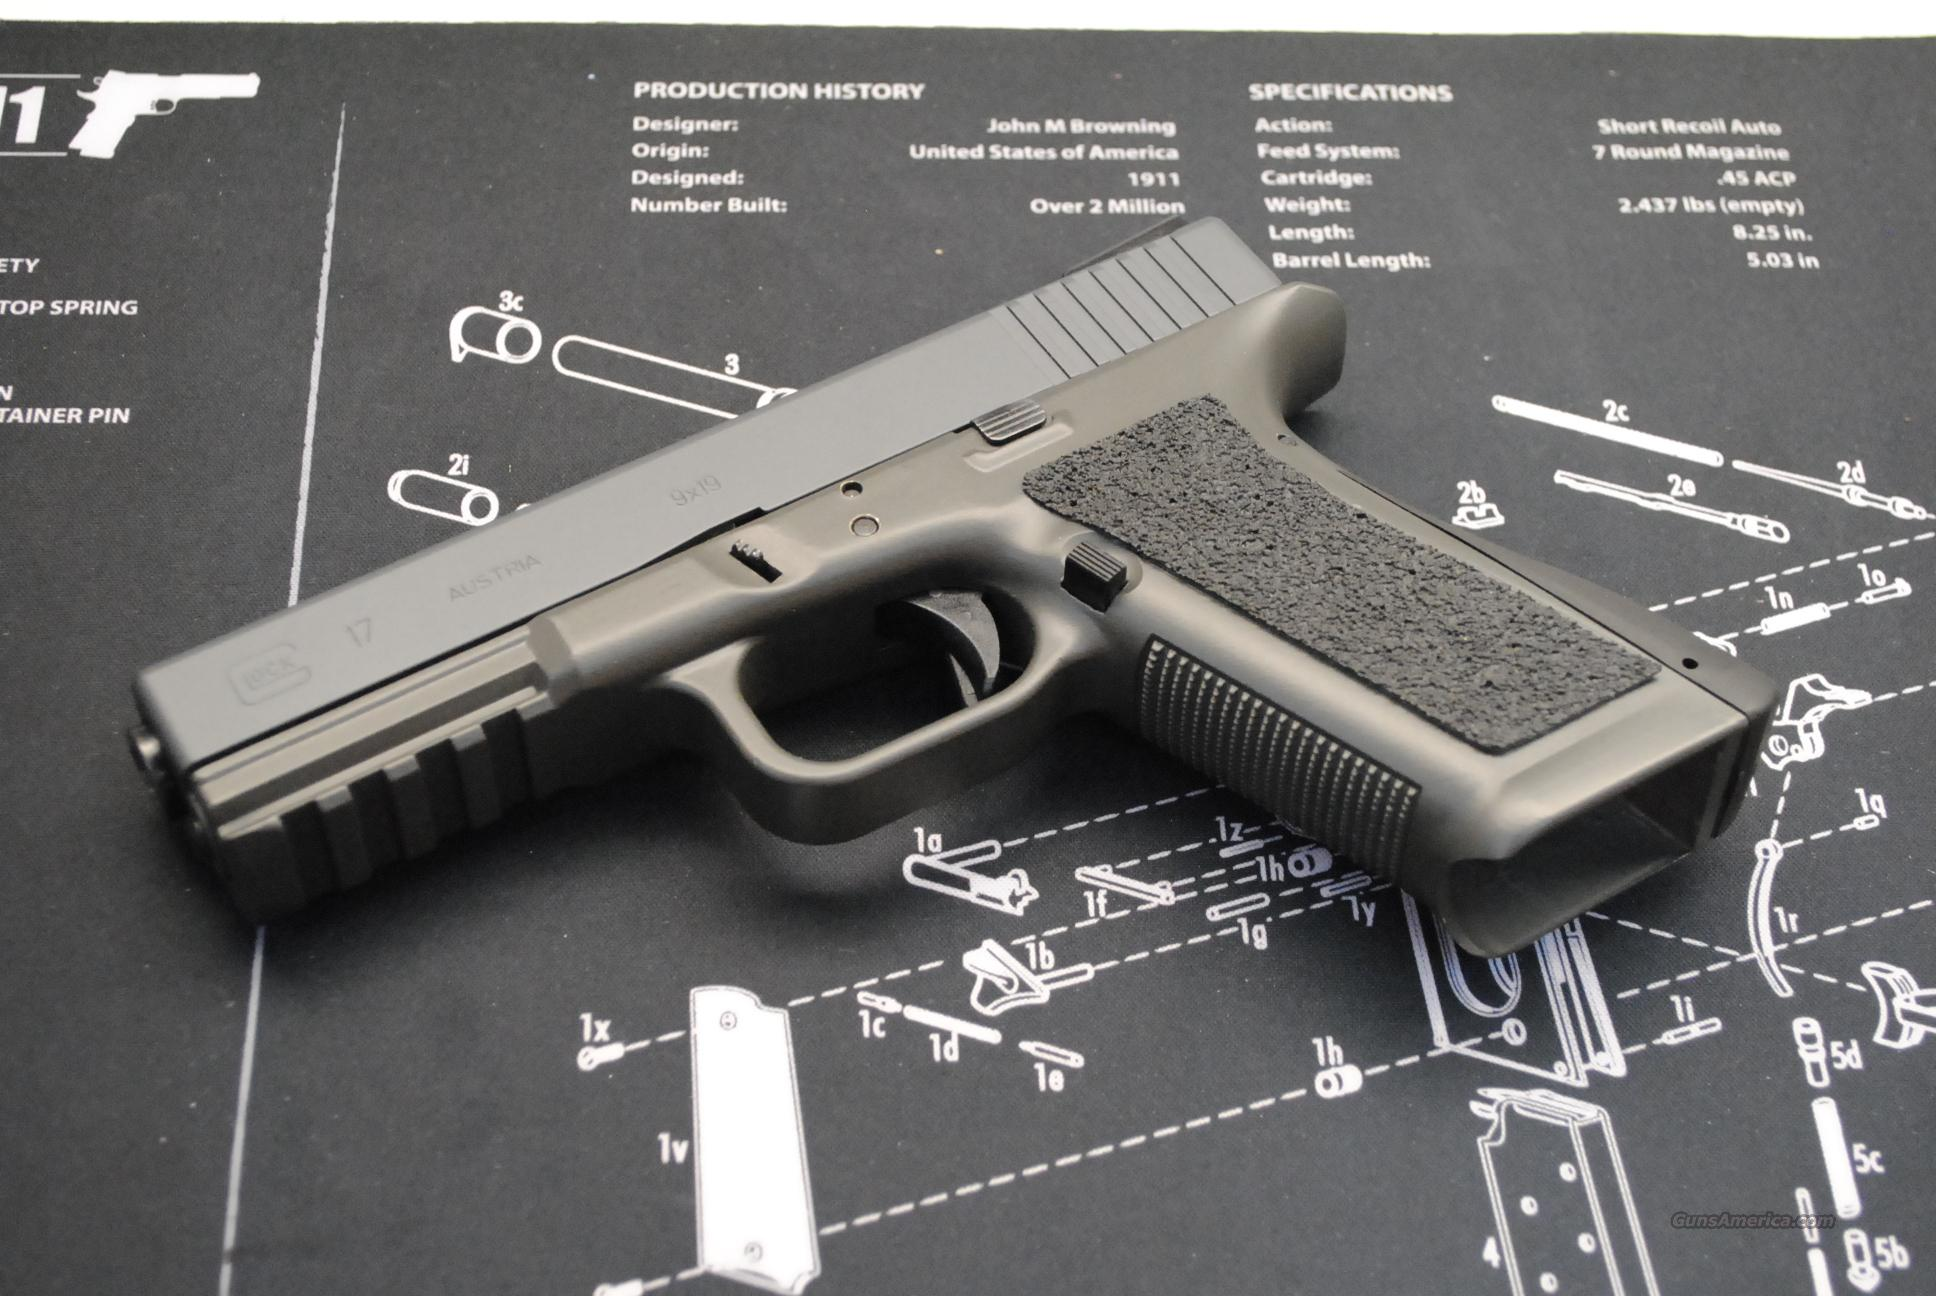 Glock 17 with CCF Aluminum Frame for sale